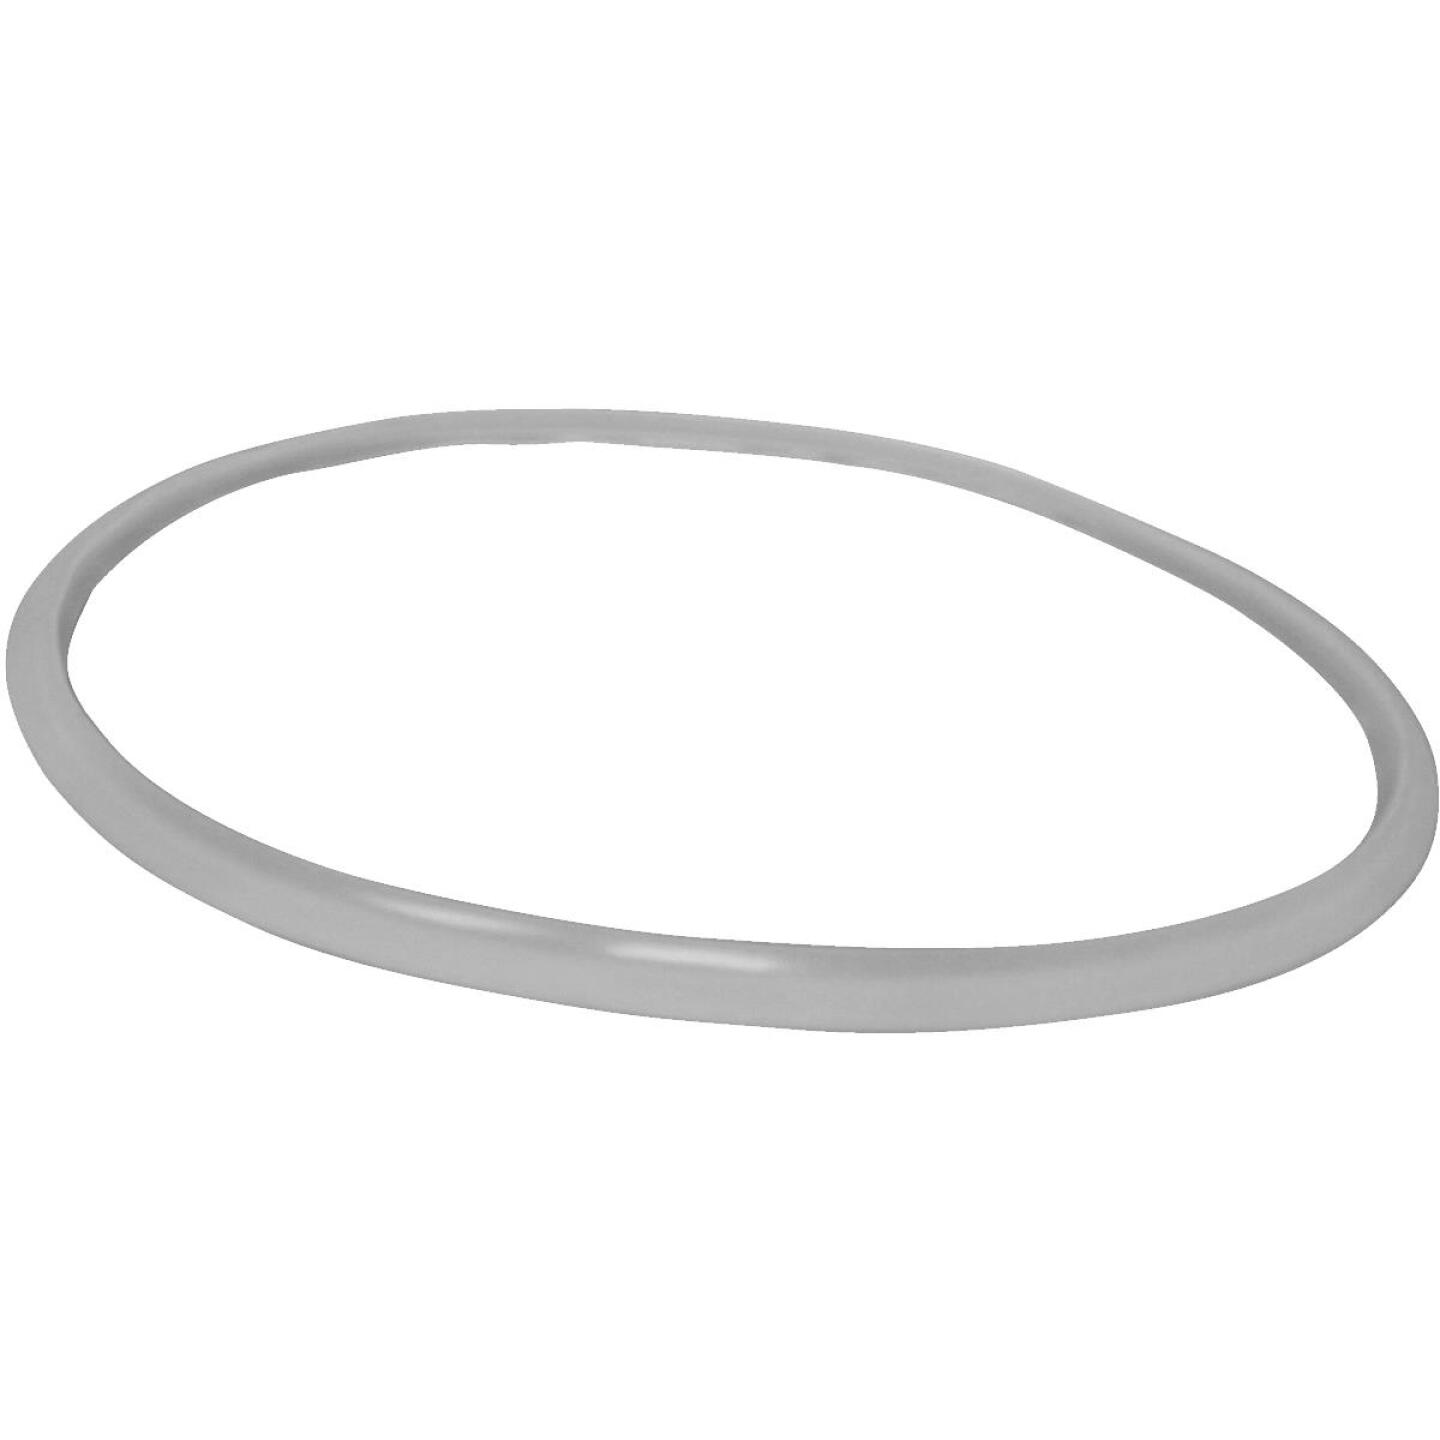 Mirro 16-22 Qt. Pressure Cooker or Canner Gasket Image 1